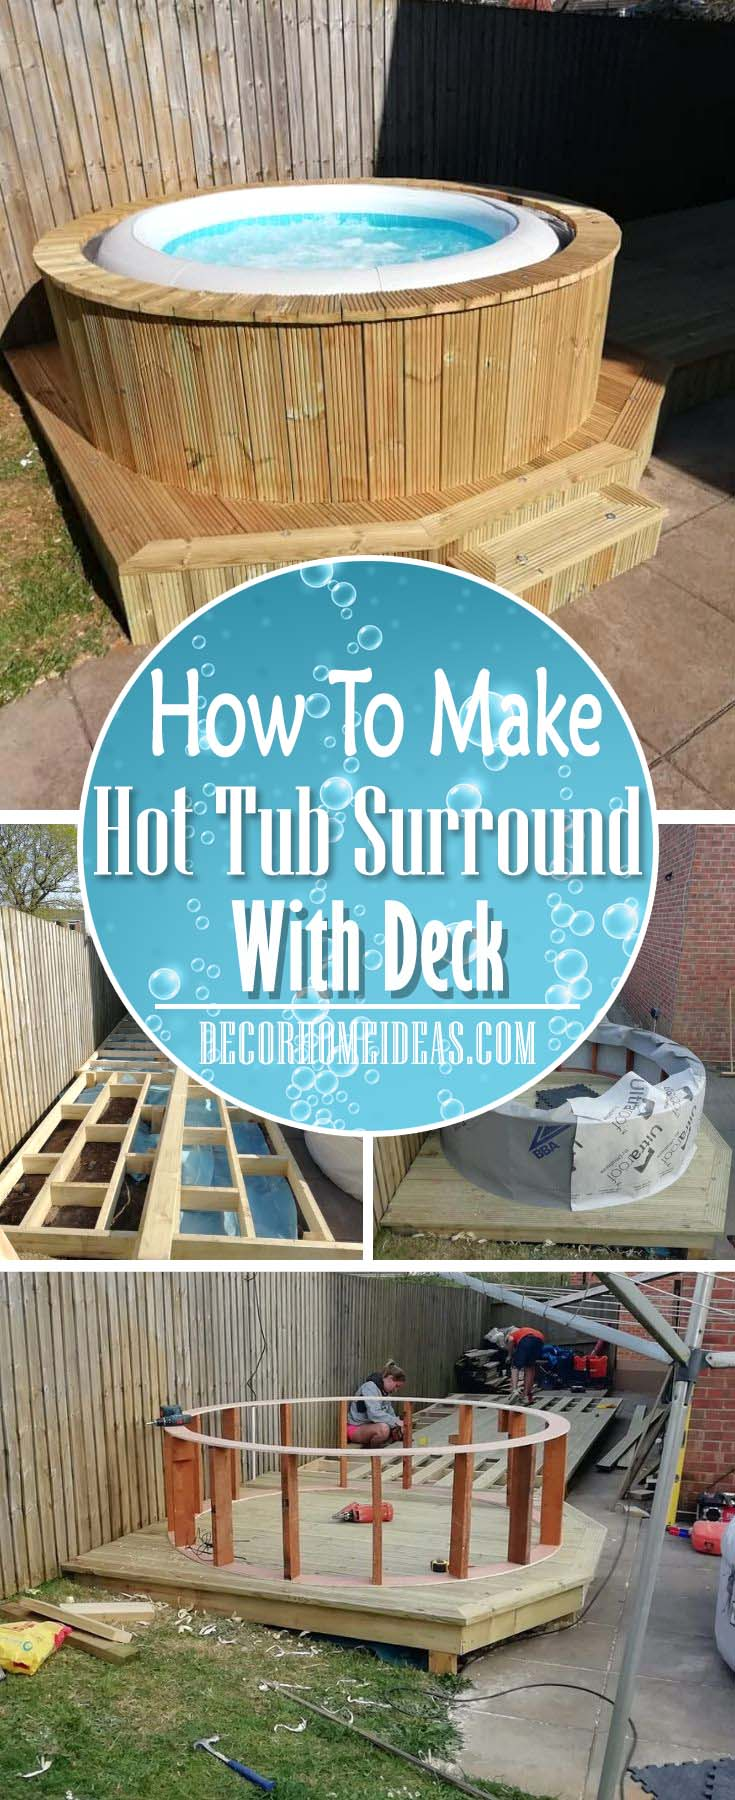 How To Make A Hot Tub Surround With Deck Decor Home Ideas